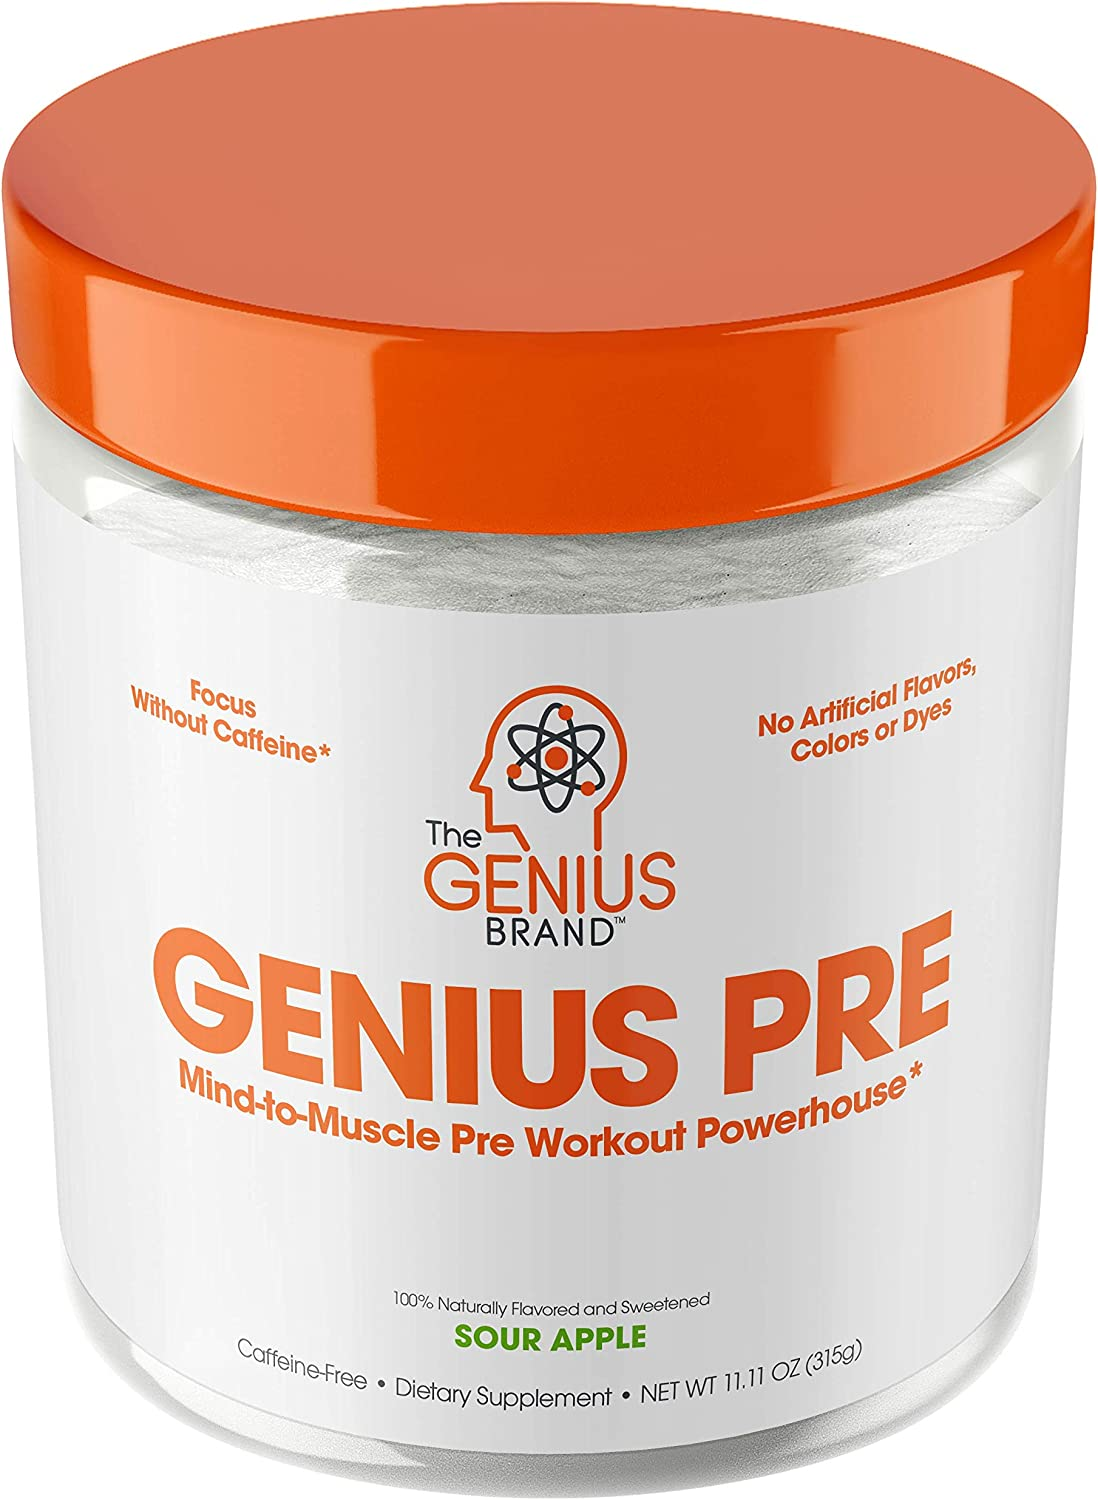 Genius Pre Workout Powder All Natural Nootropic Preworkout Caffeine Free Nitric Oxide Booster w Beta Alanine Alpha GPC Boost Focus, Energy NO Muscle Builder Supplement Sour Apple 20SV